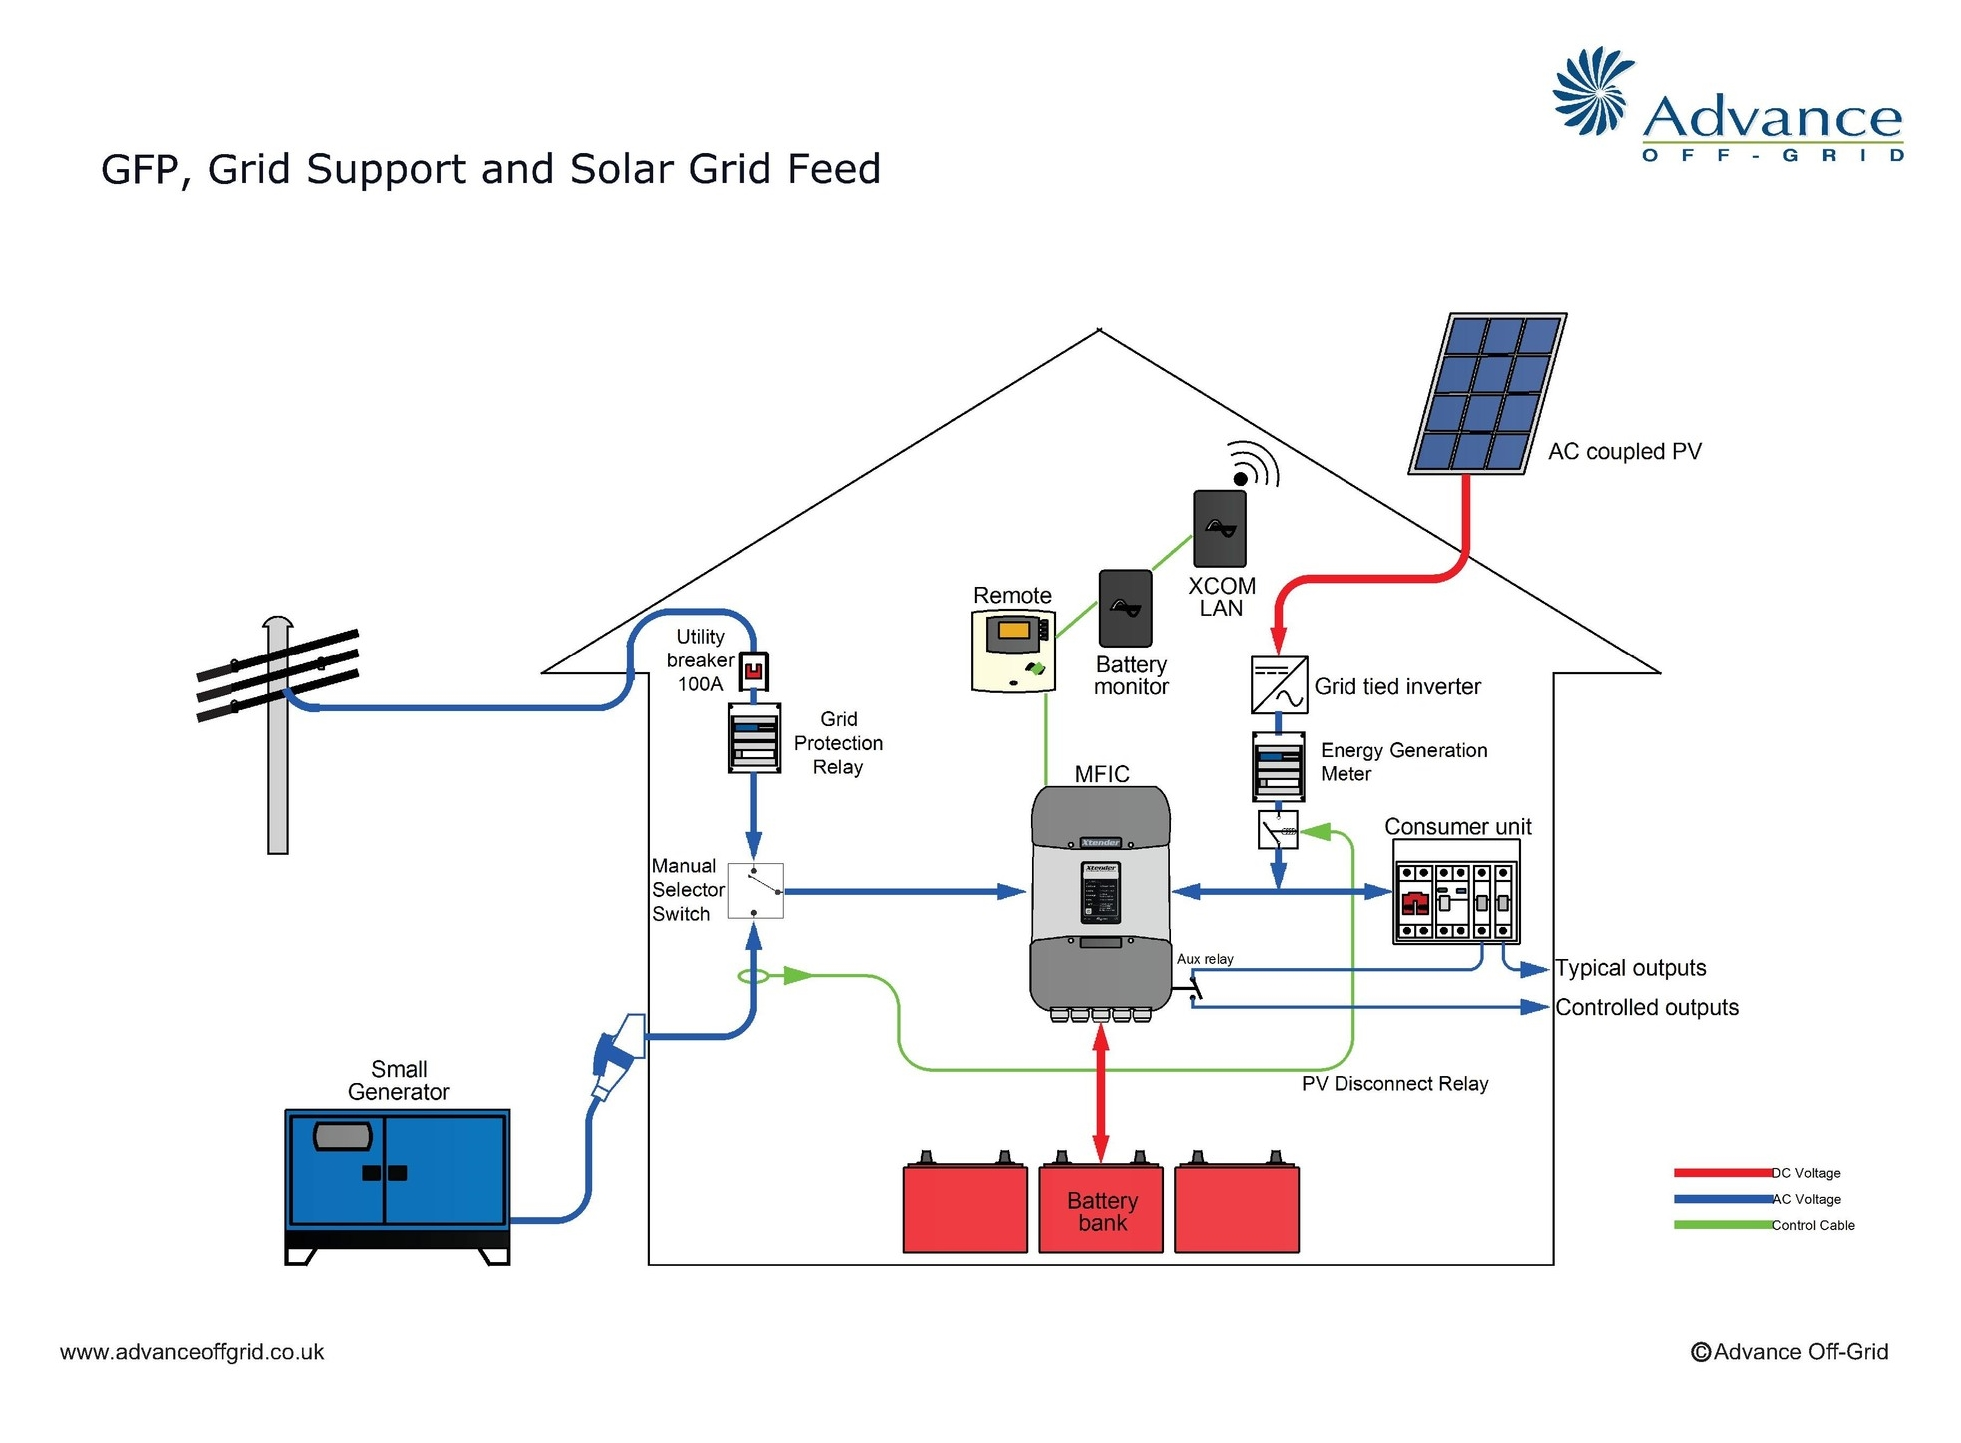 off-grid applications